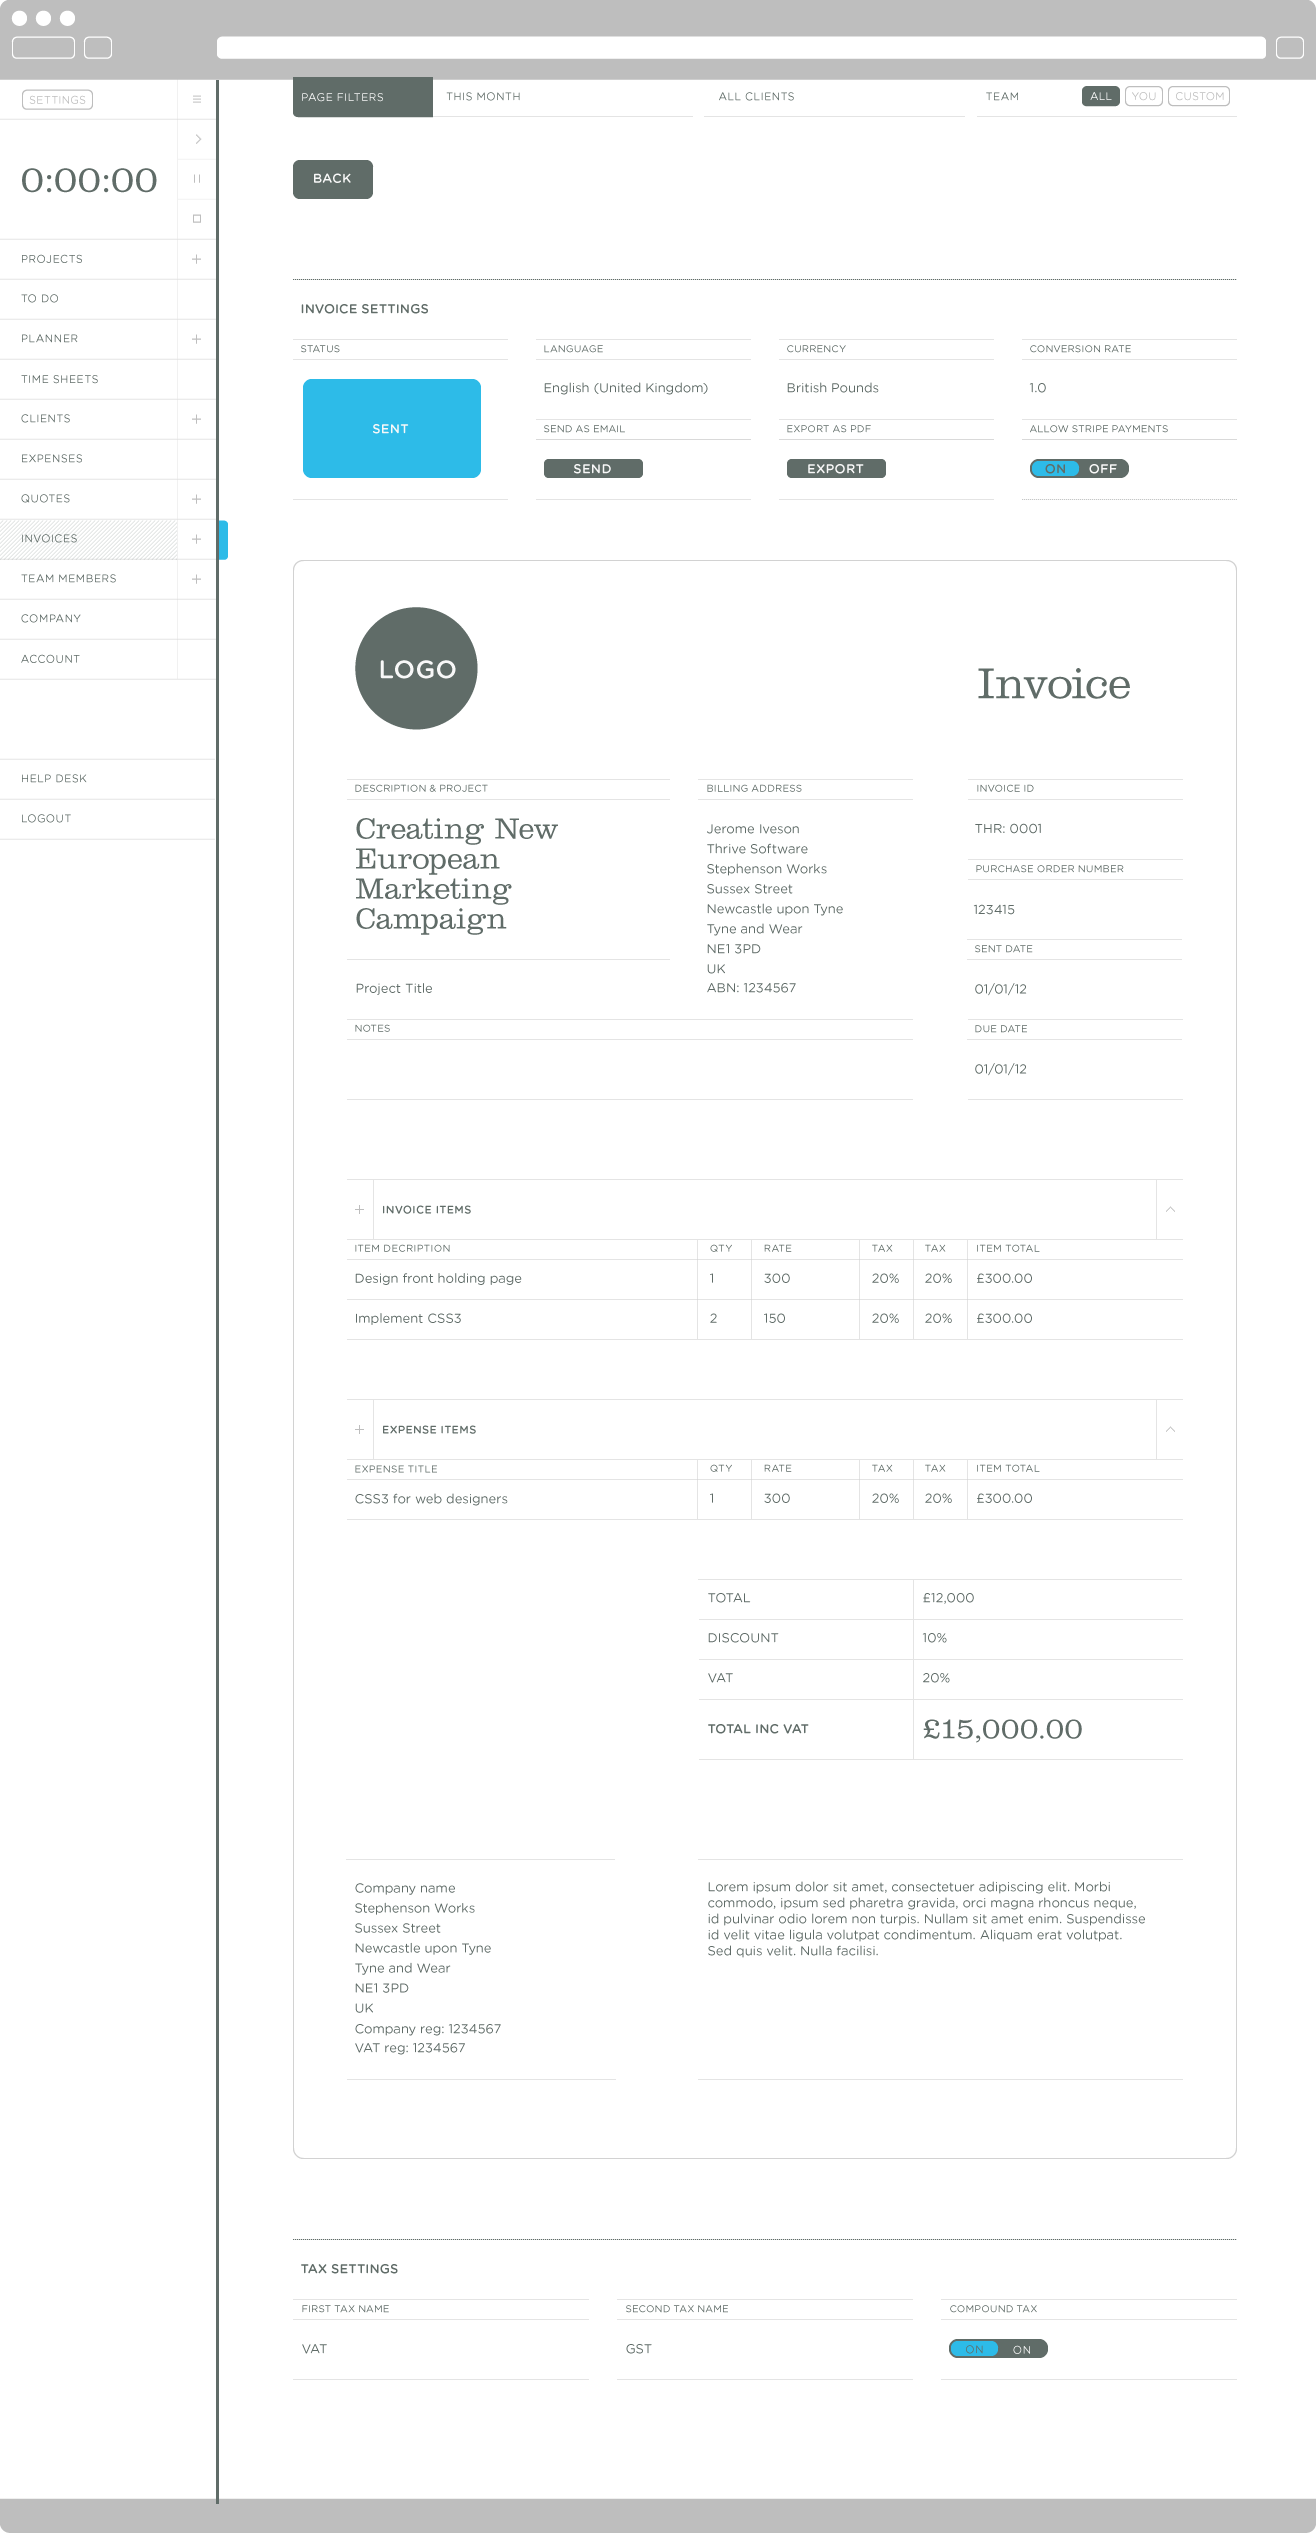 project management software solo invoice software